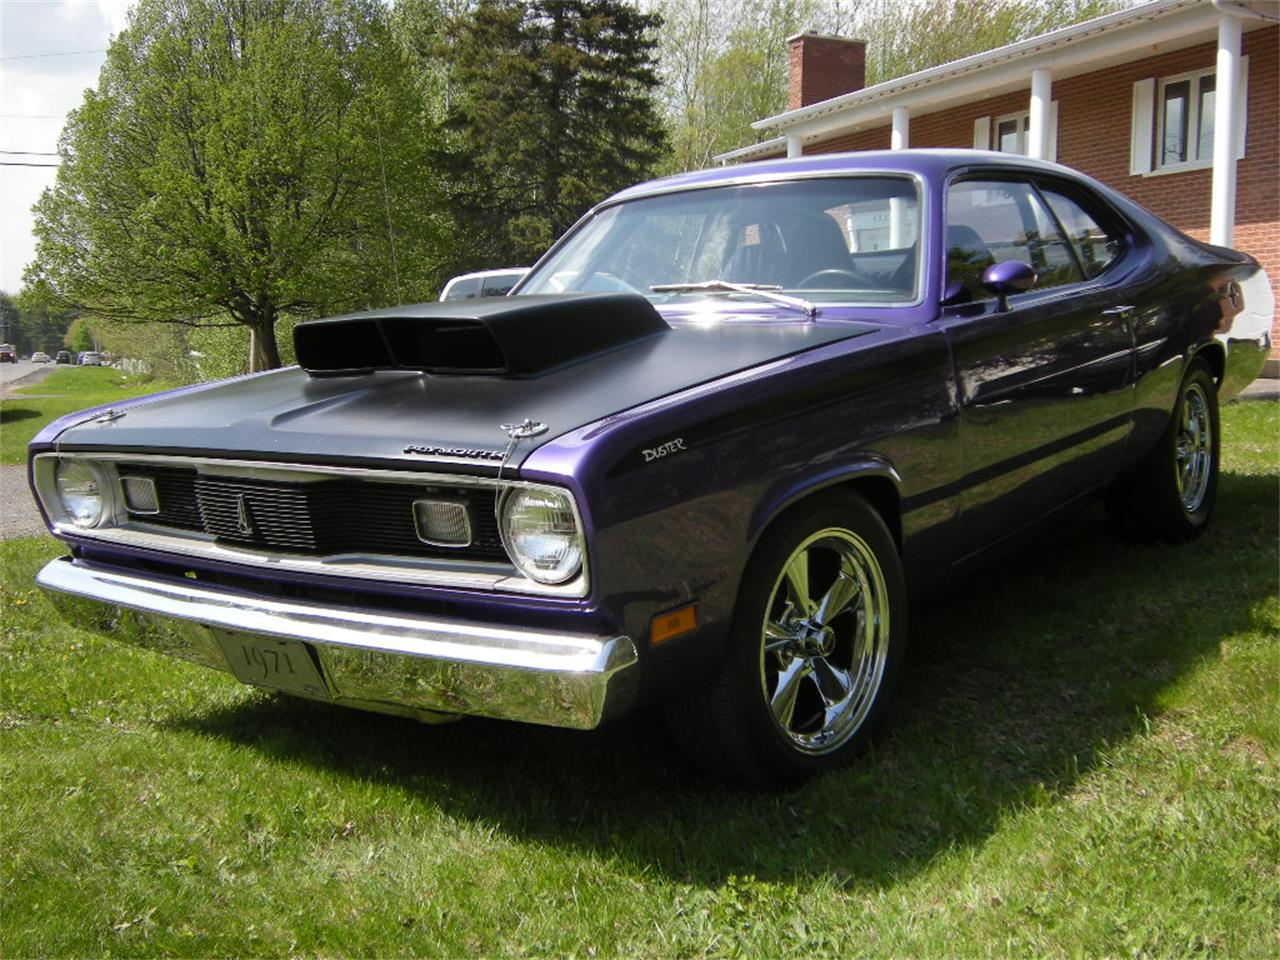 Large Picture of 1971 Plymouth Duster located in Drummondville Quebec Offered by a Private Seller - L4GO